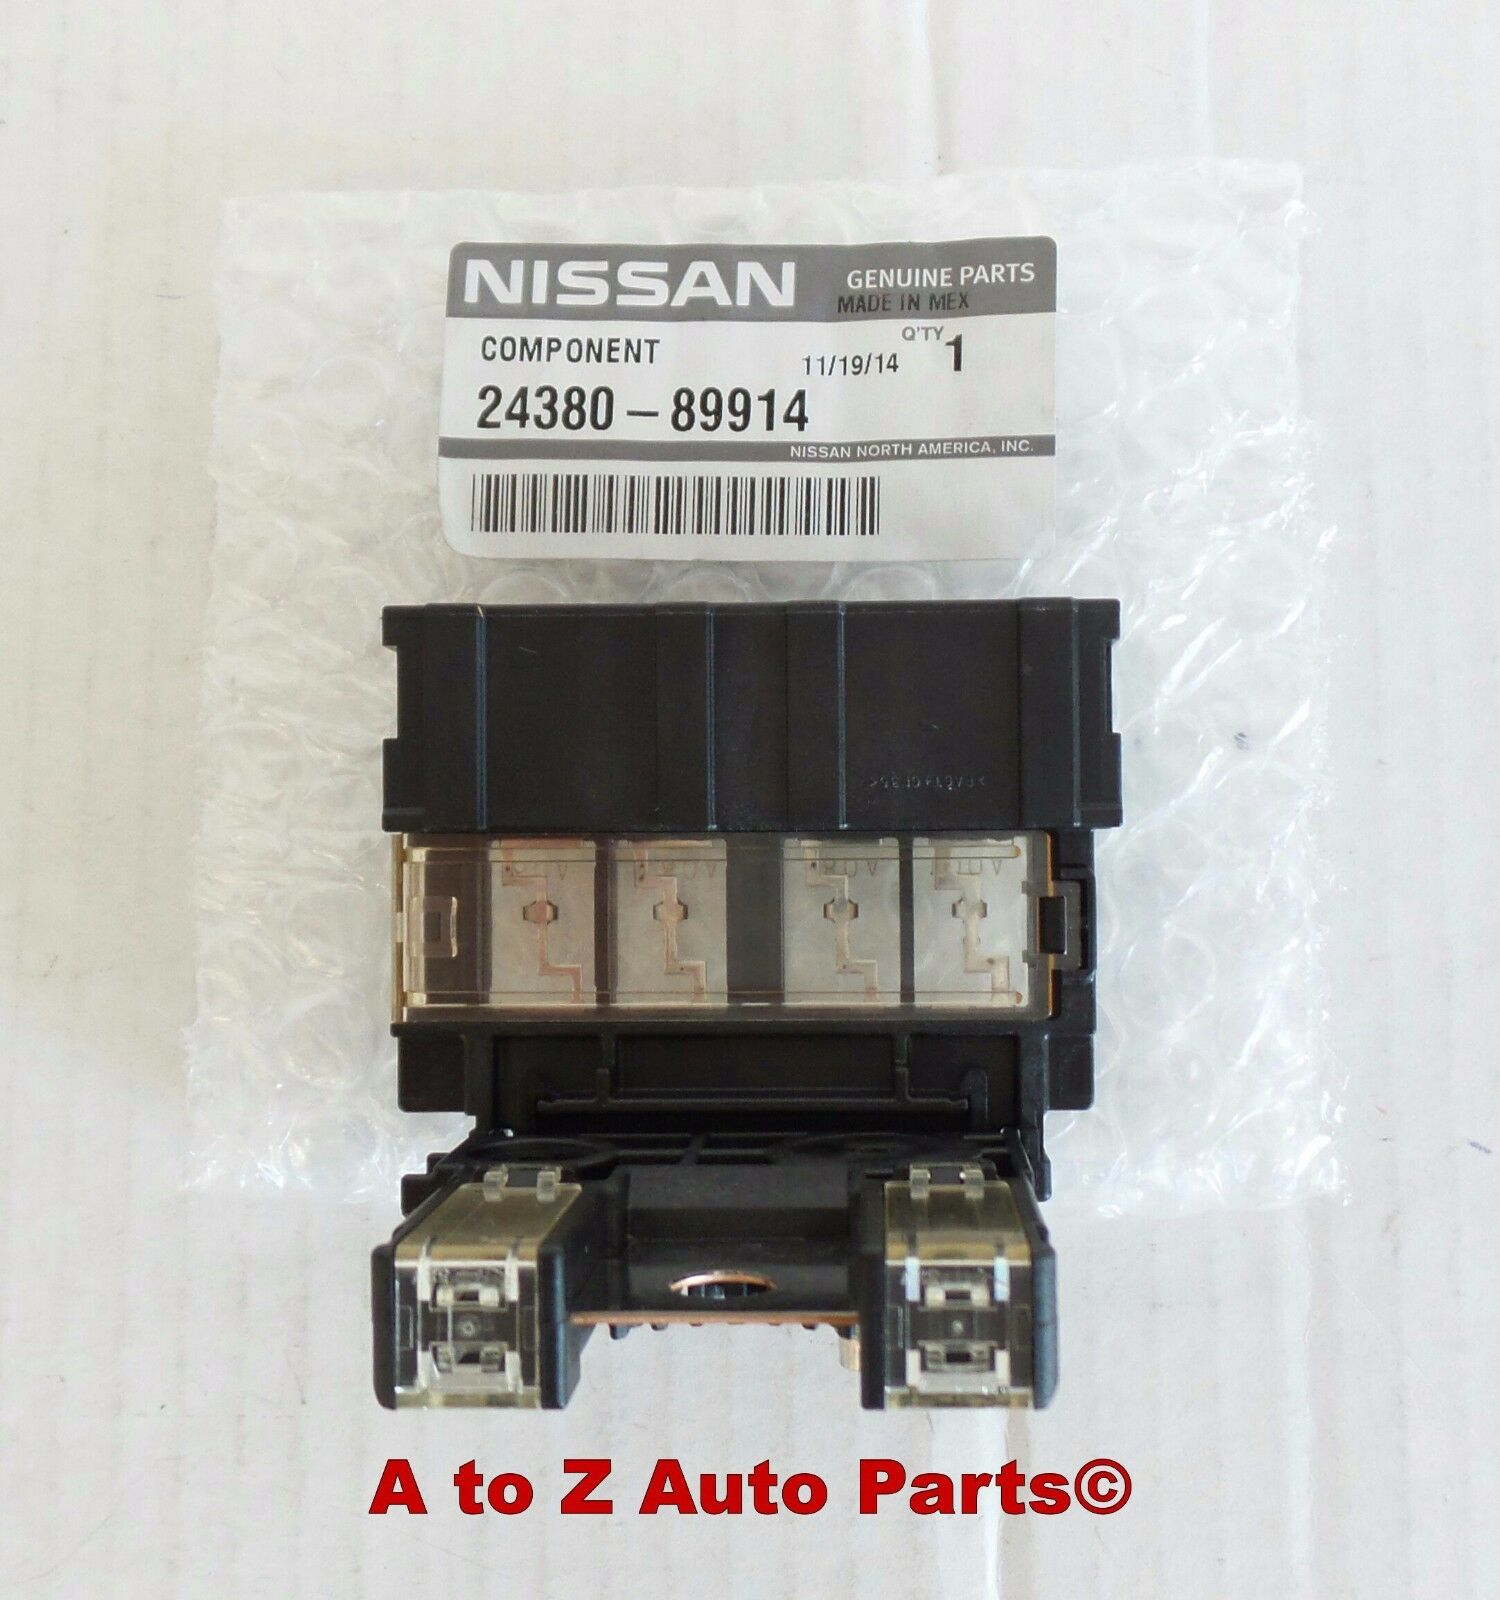 Positive Battery Fuse Connector Battery Circuit Fuse Fusible Link Holder for 2005-2015 Nissan Xterra Pathfinder Frontier Replace OE# 24380-89914 2438089914